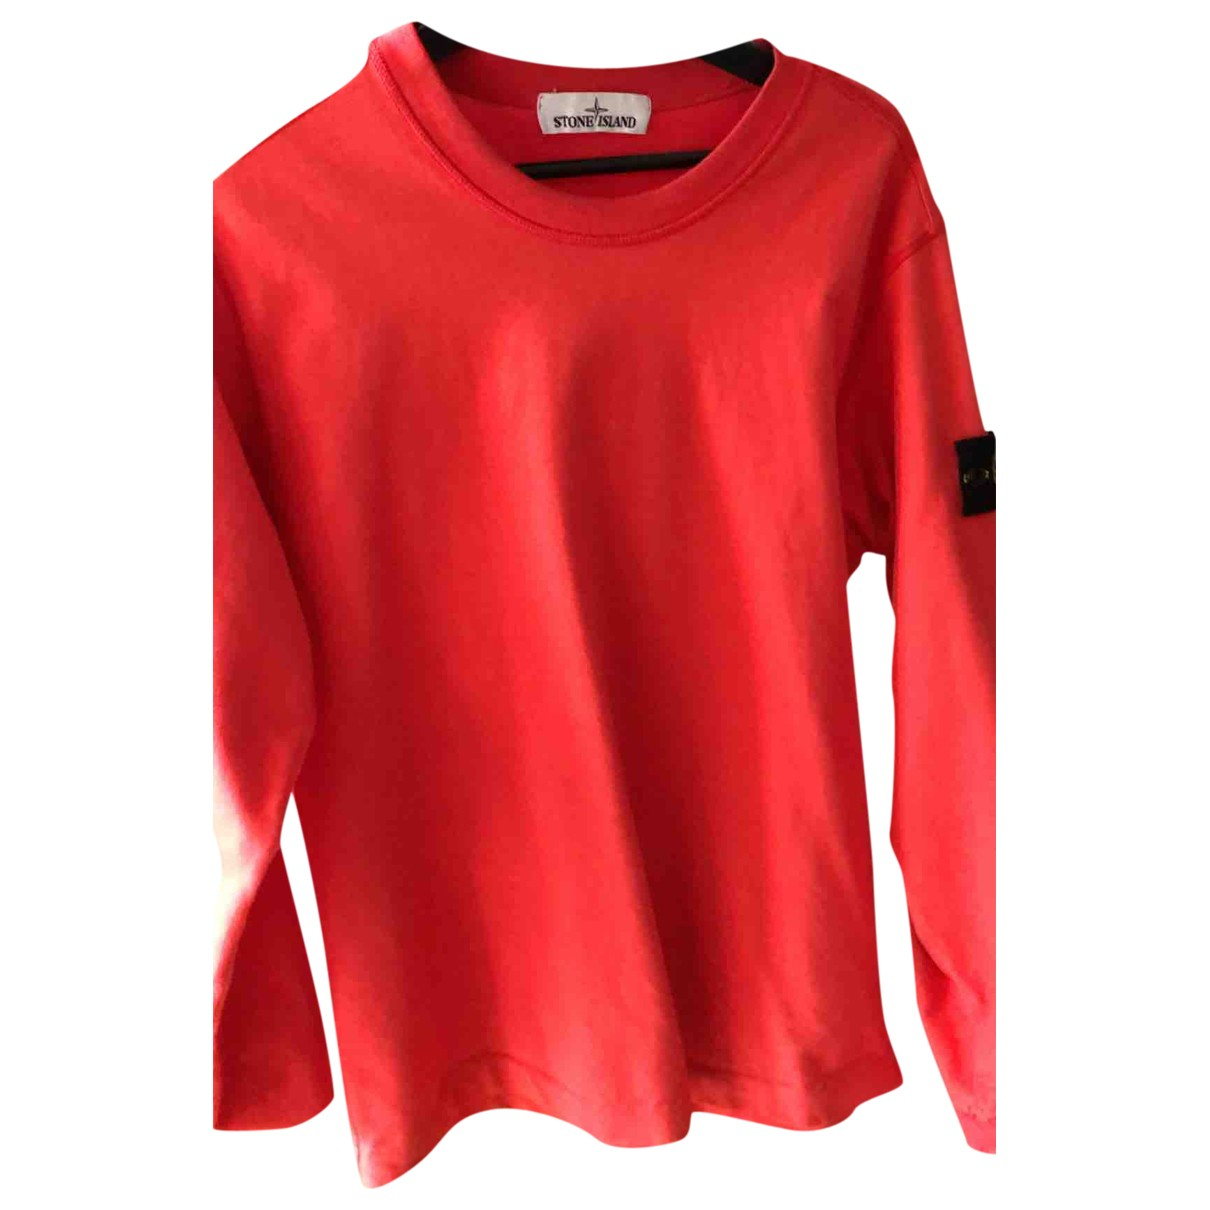 Stone Island \N Red Knitwear & Sweatshirts for Men S International